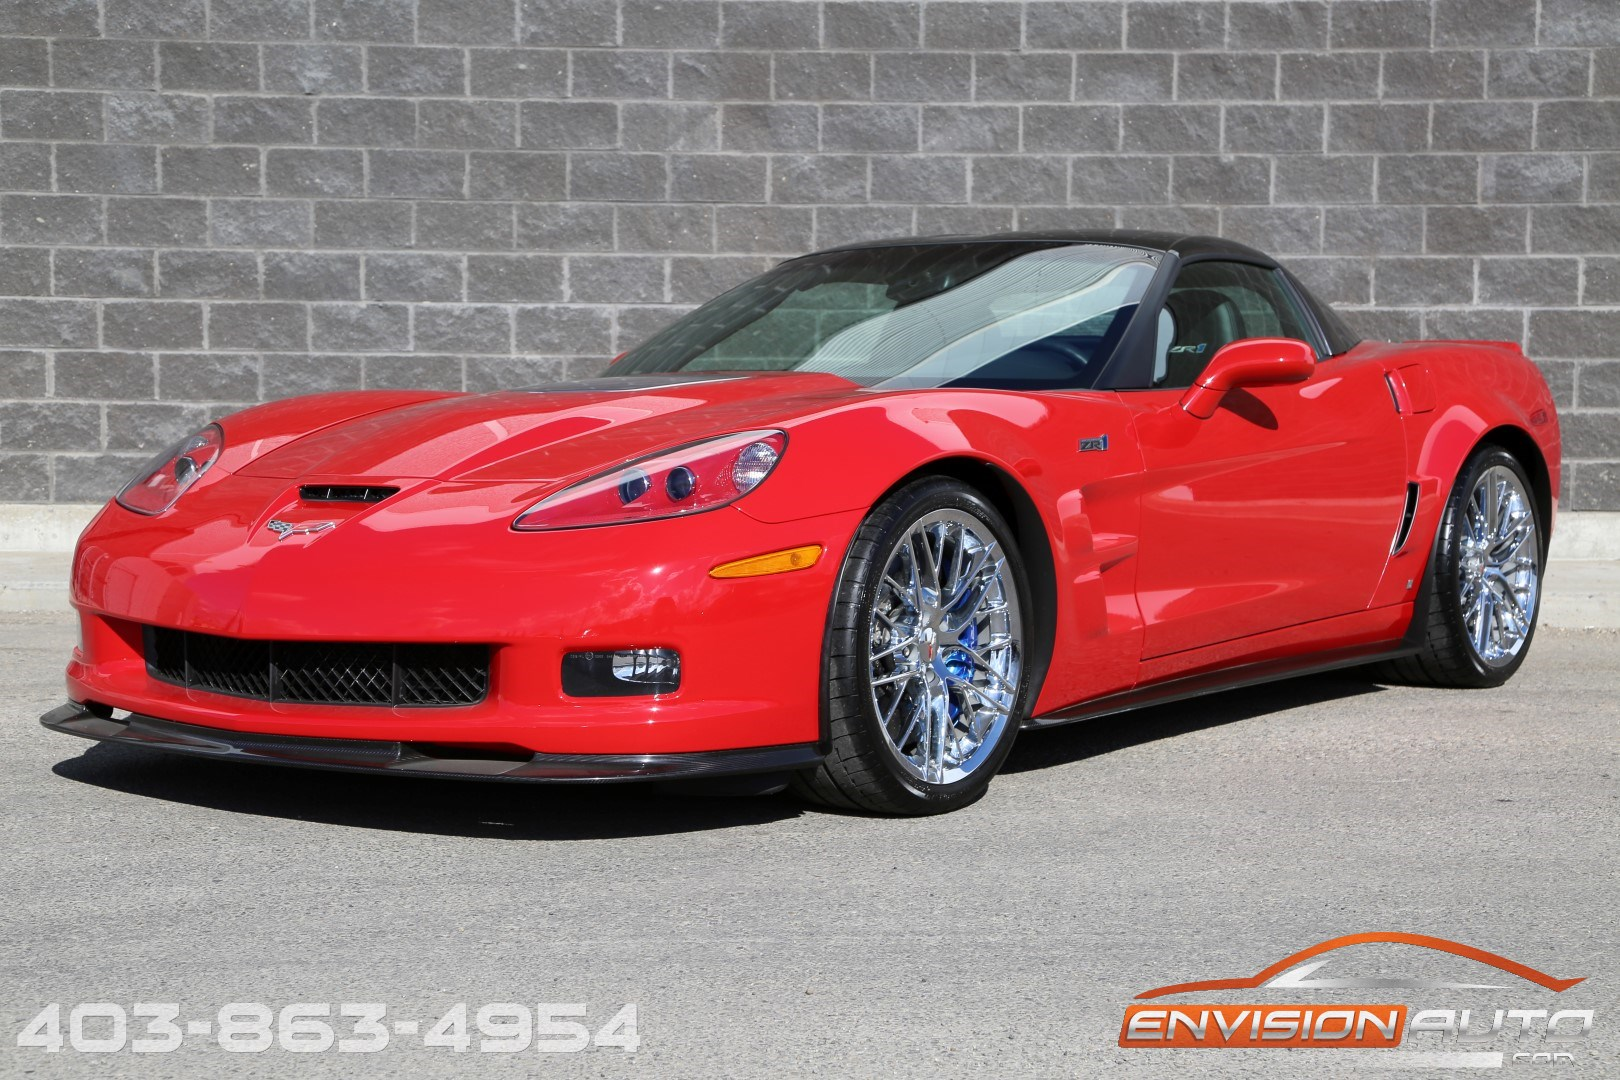 2009 Chevrolet Corvette Zr1 1se 3zr Option Only 6 300